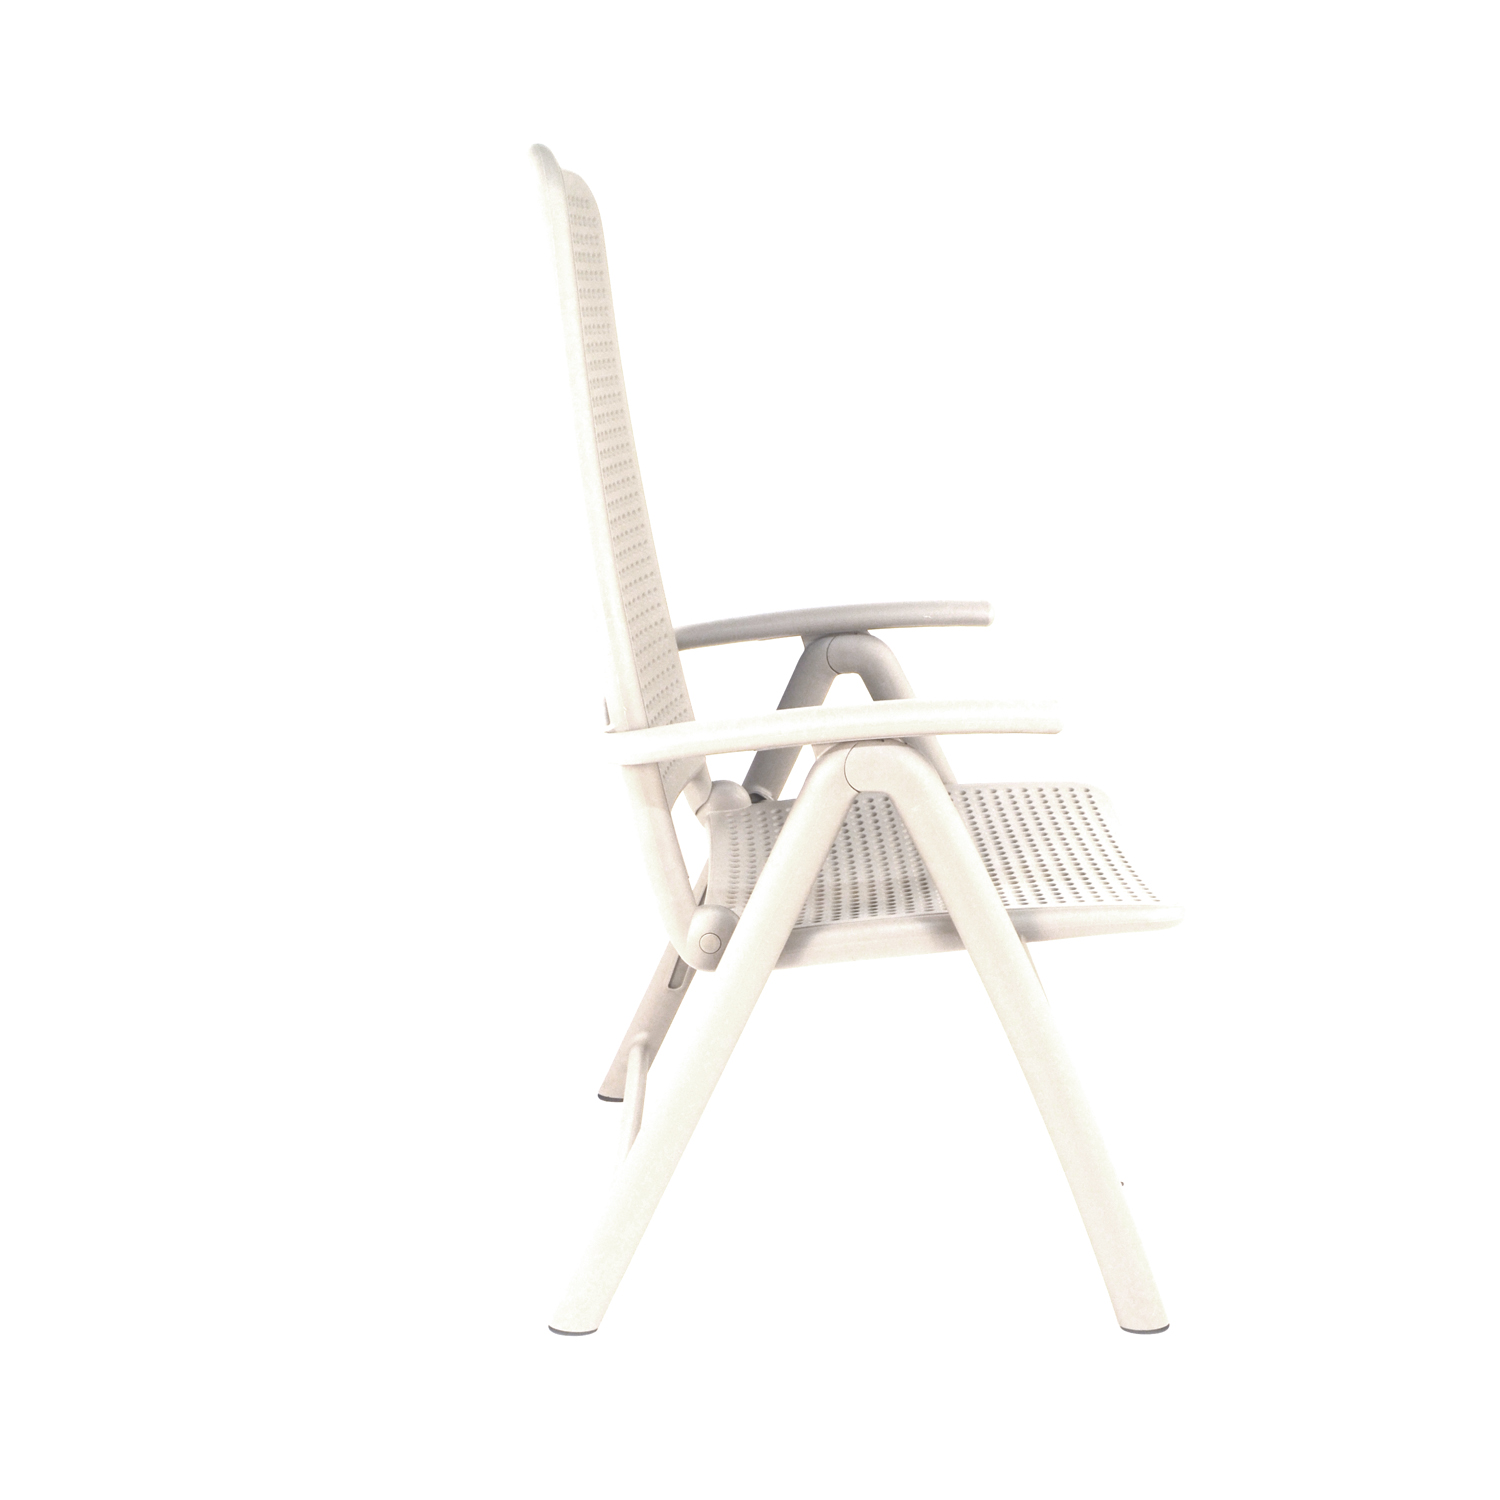 Darsena Chair reclined position 1